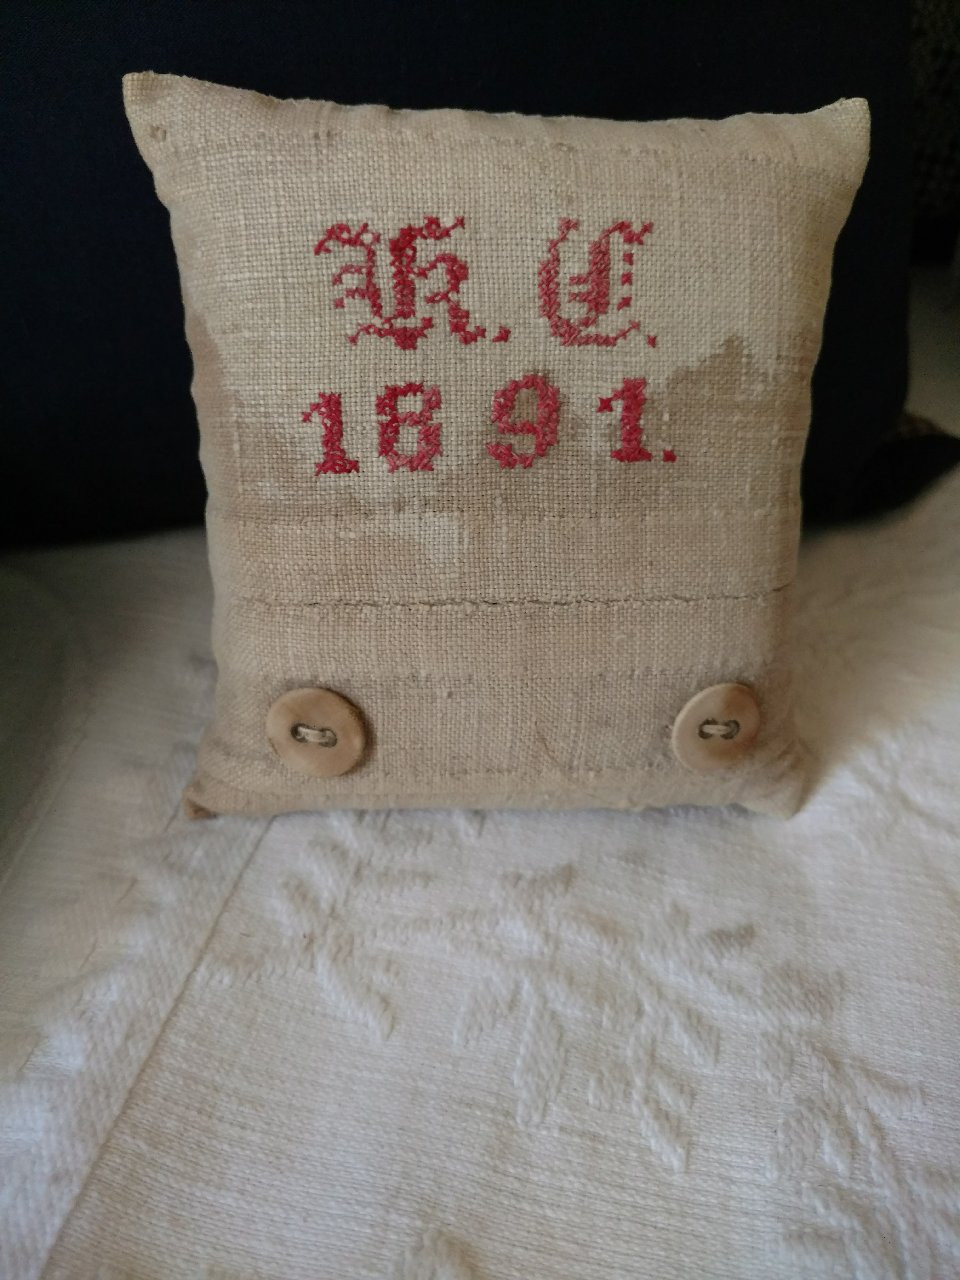 1891 Antique School Girl Sampler Pincushion Redwork Embroidery Sewing